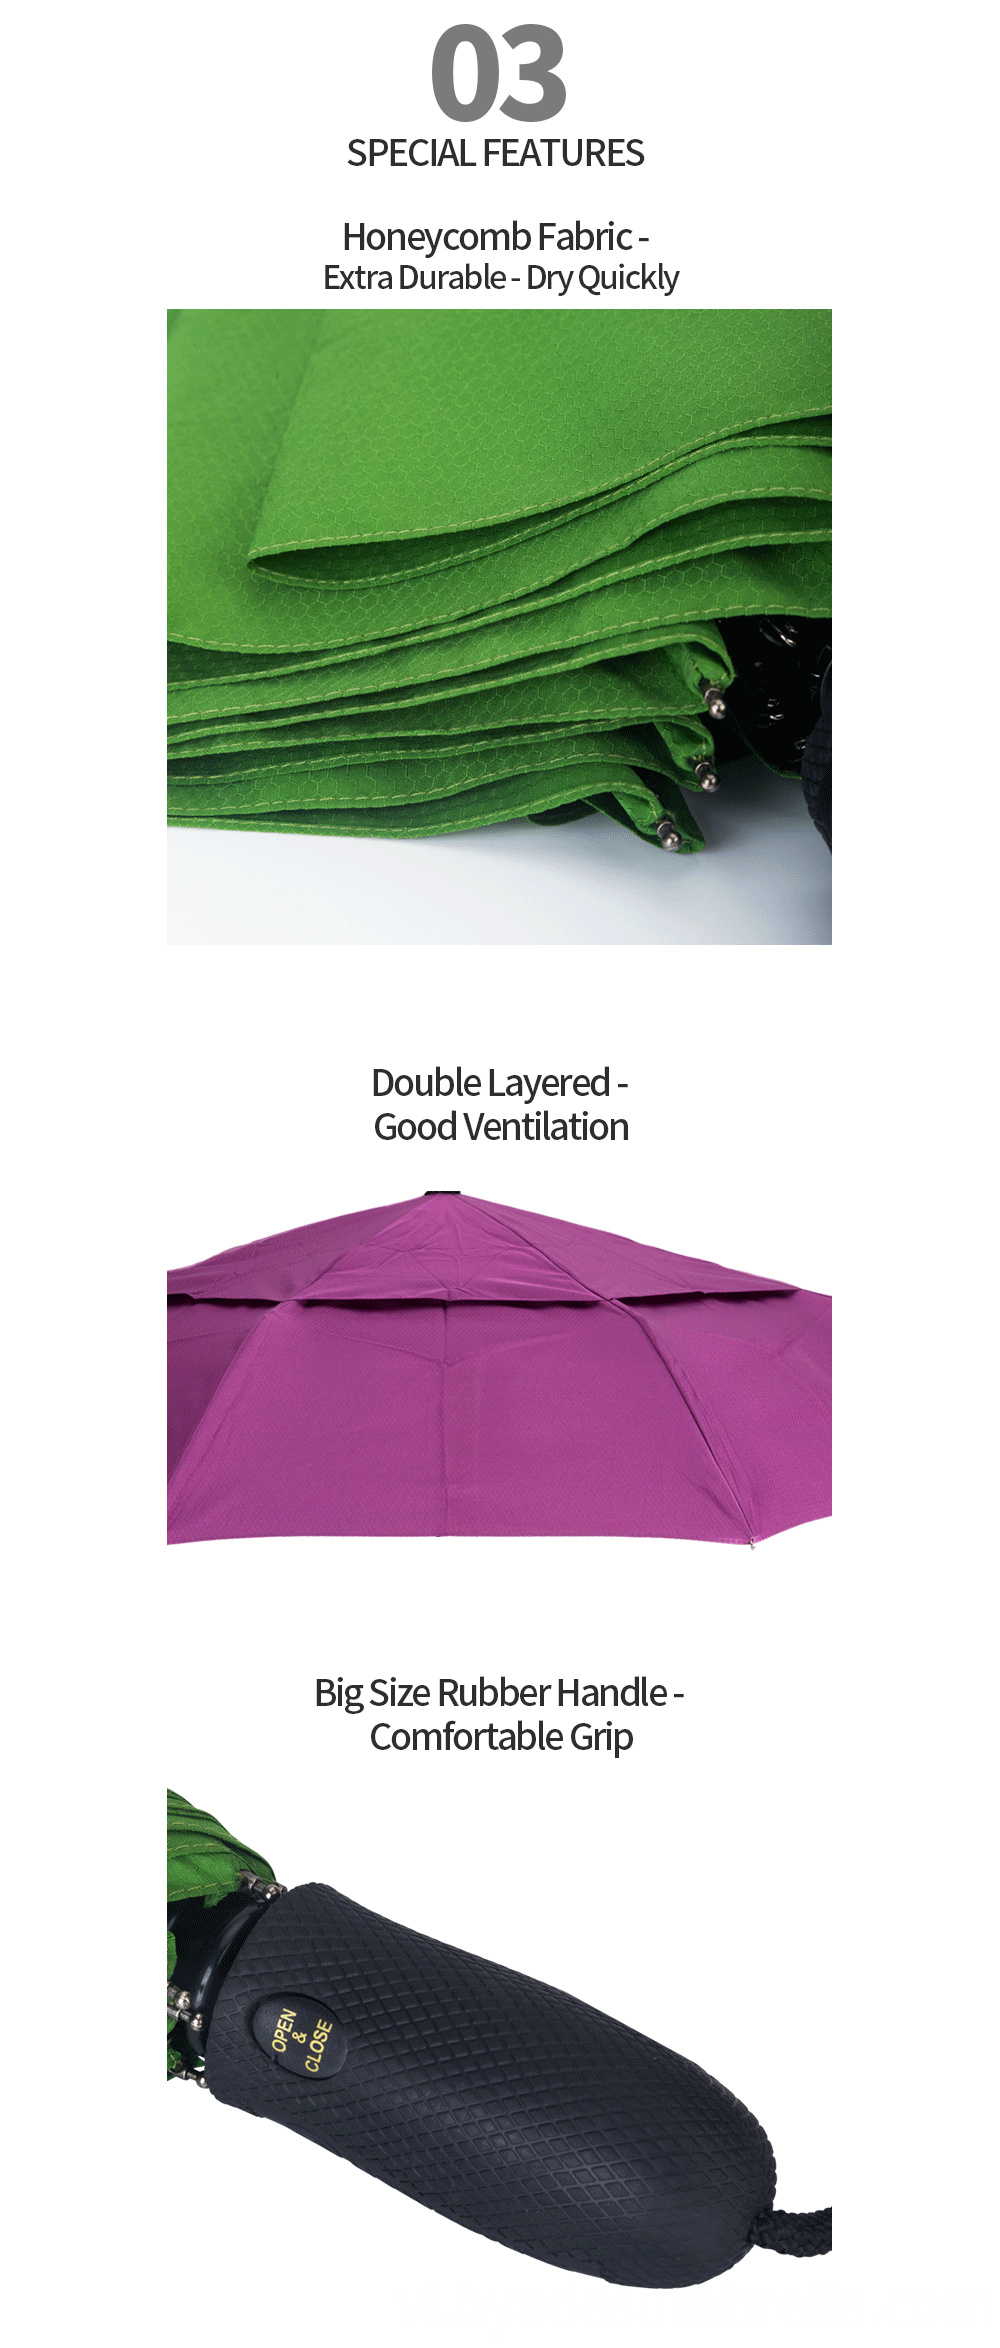 Auto Ope And Close Folding Umbrella Rubber Handle